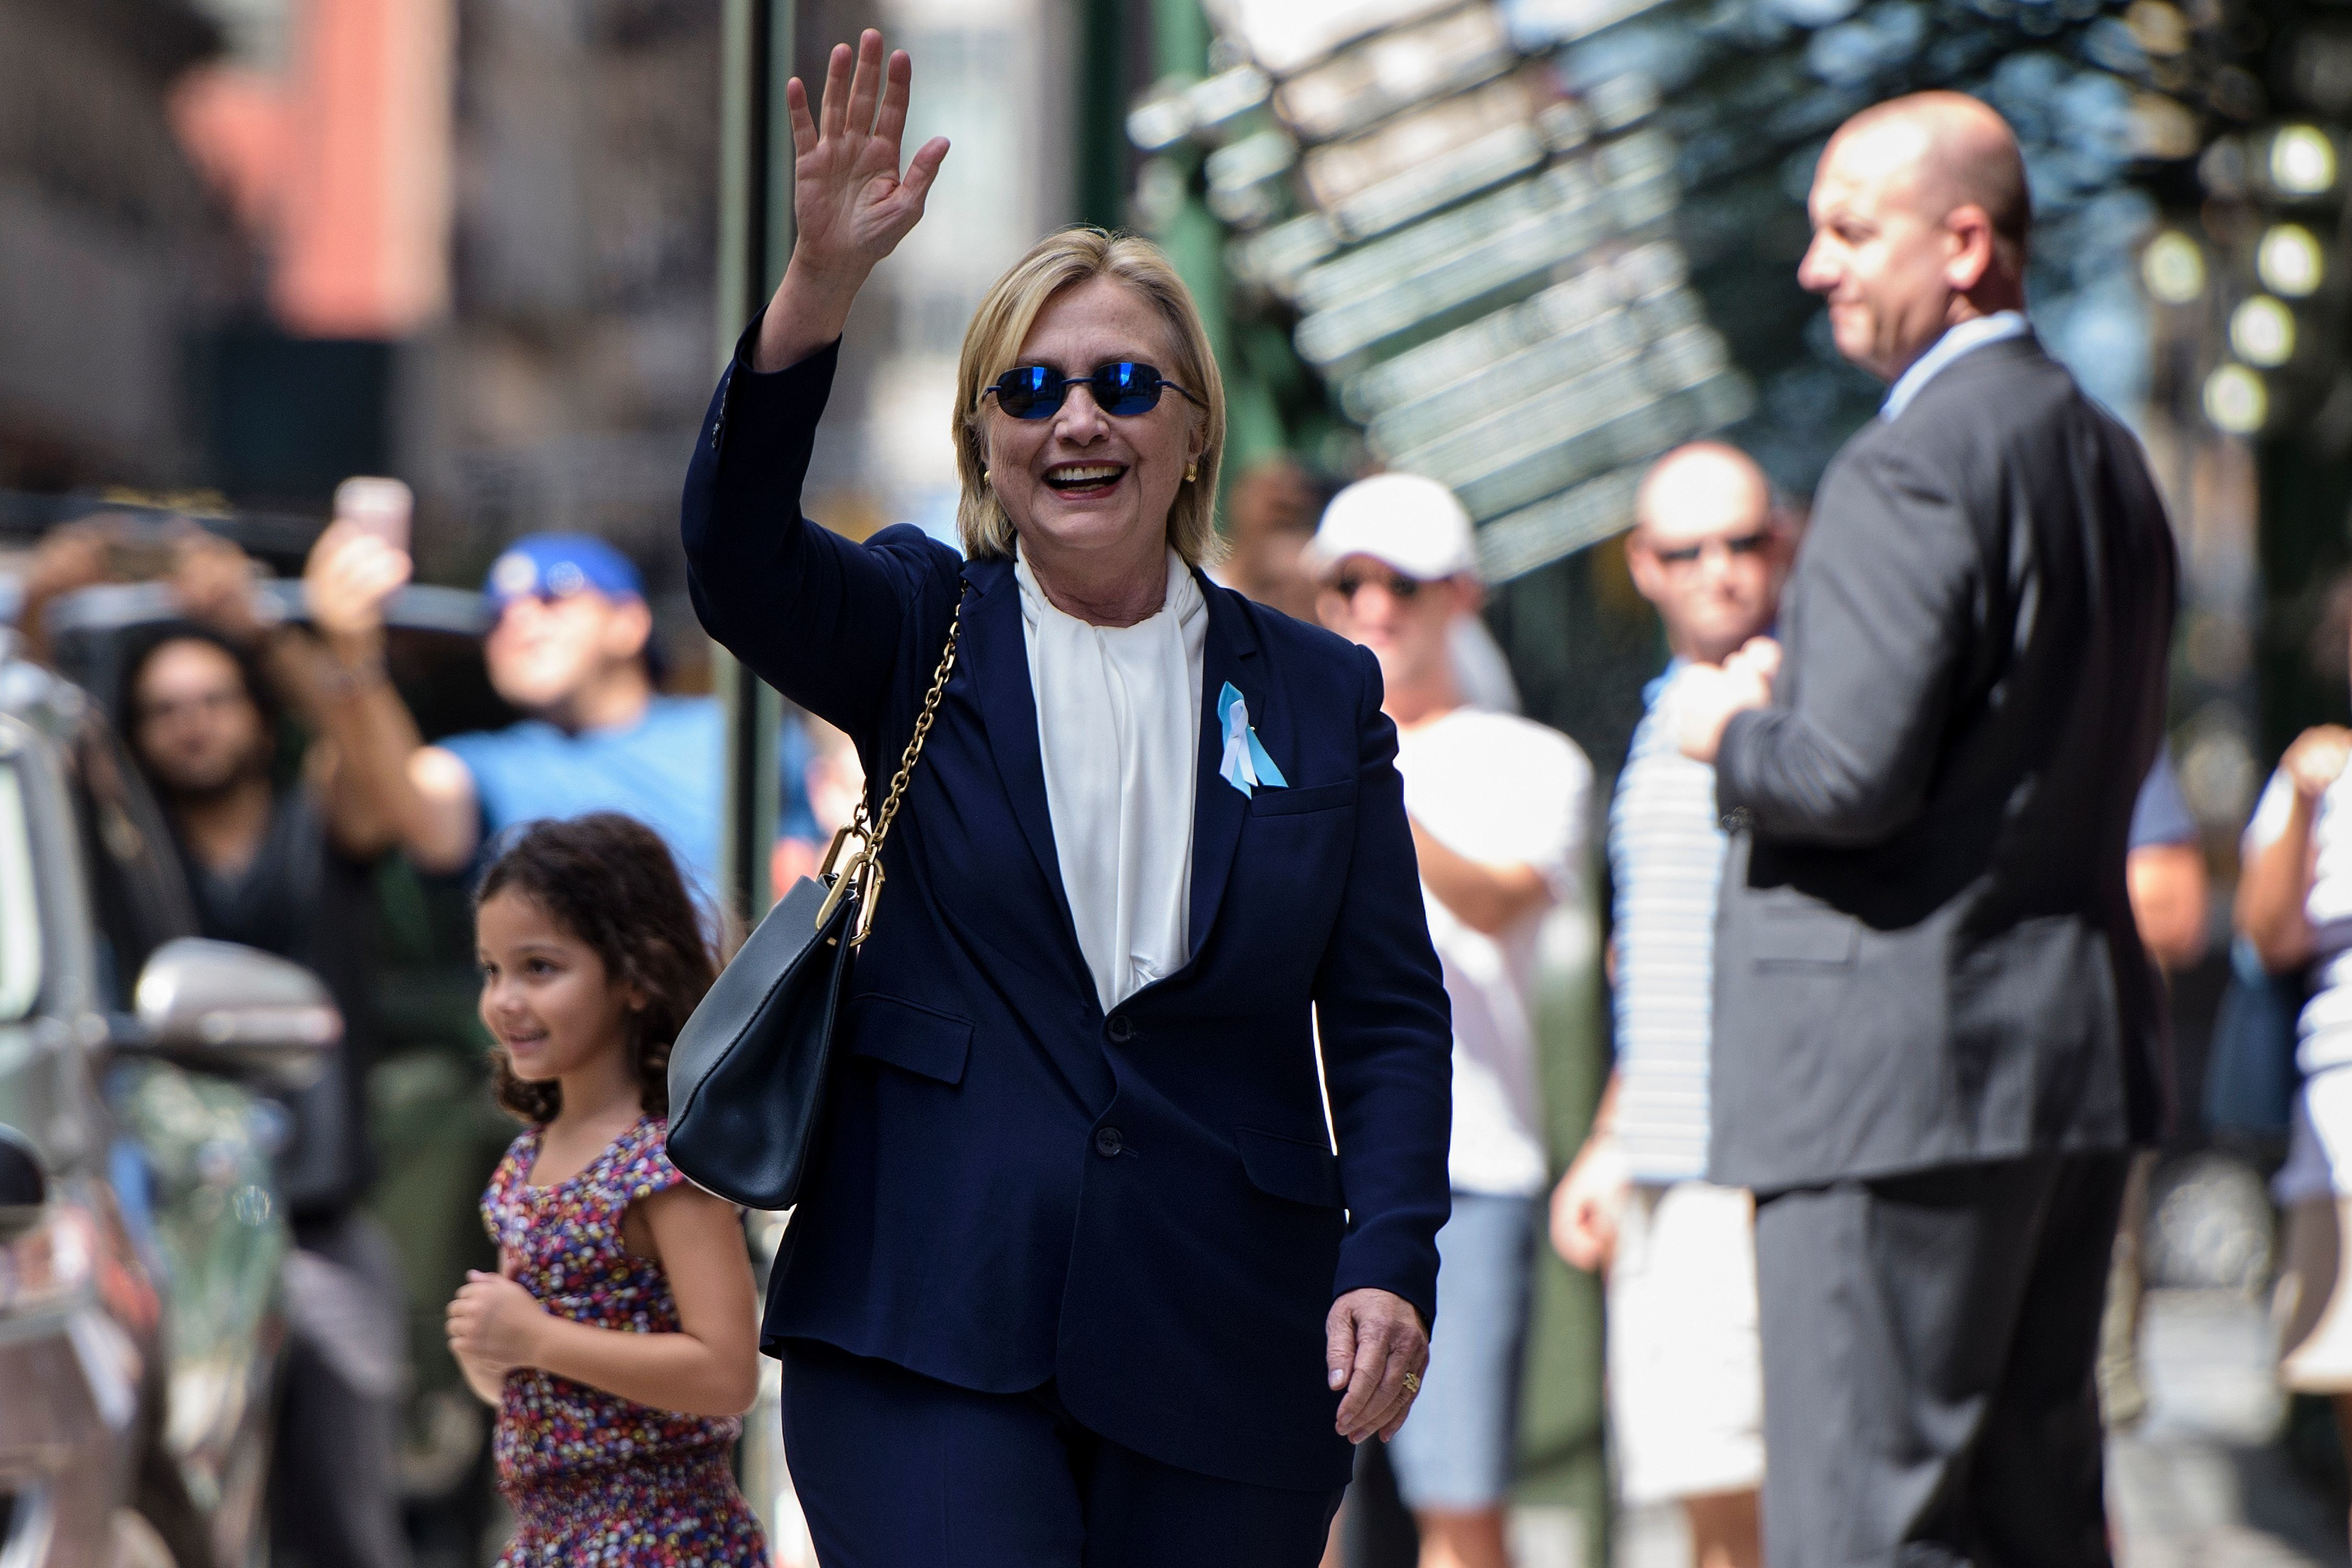 Democratic nominee Hillary Clinton leaves her daughter's apartment after restingon Sept. 11.